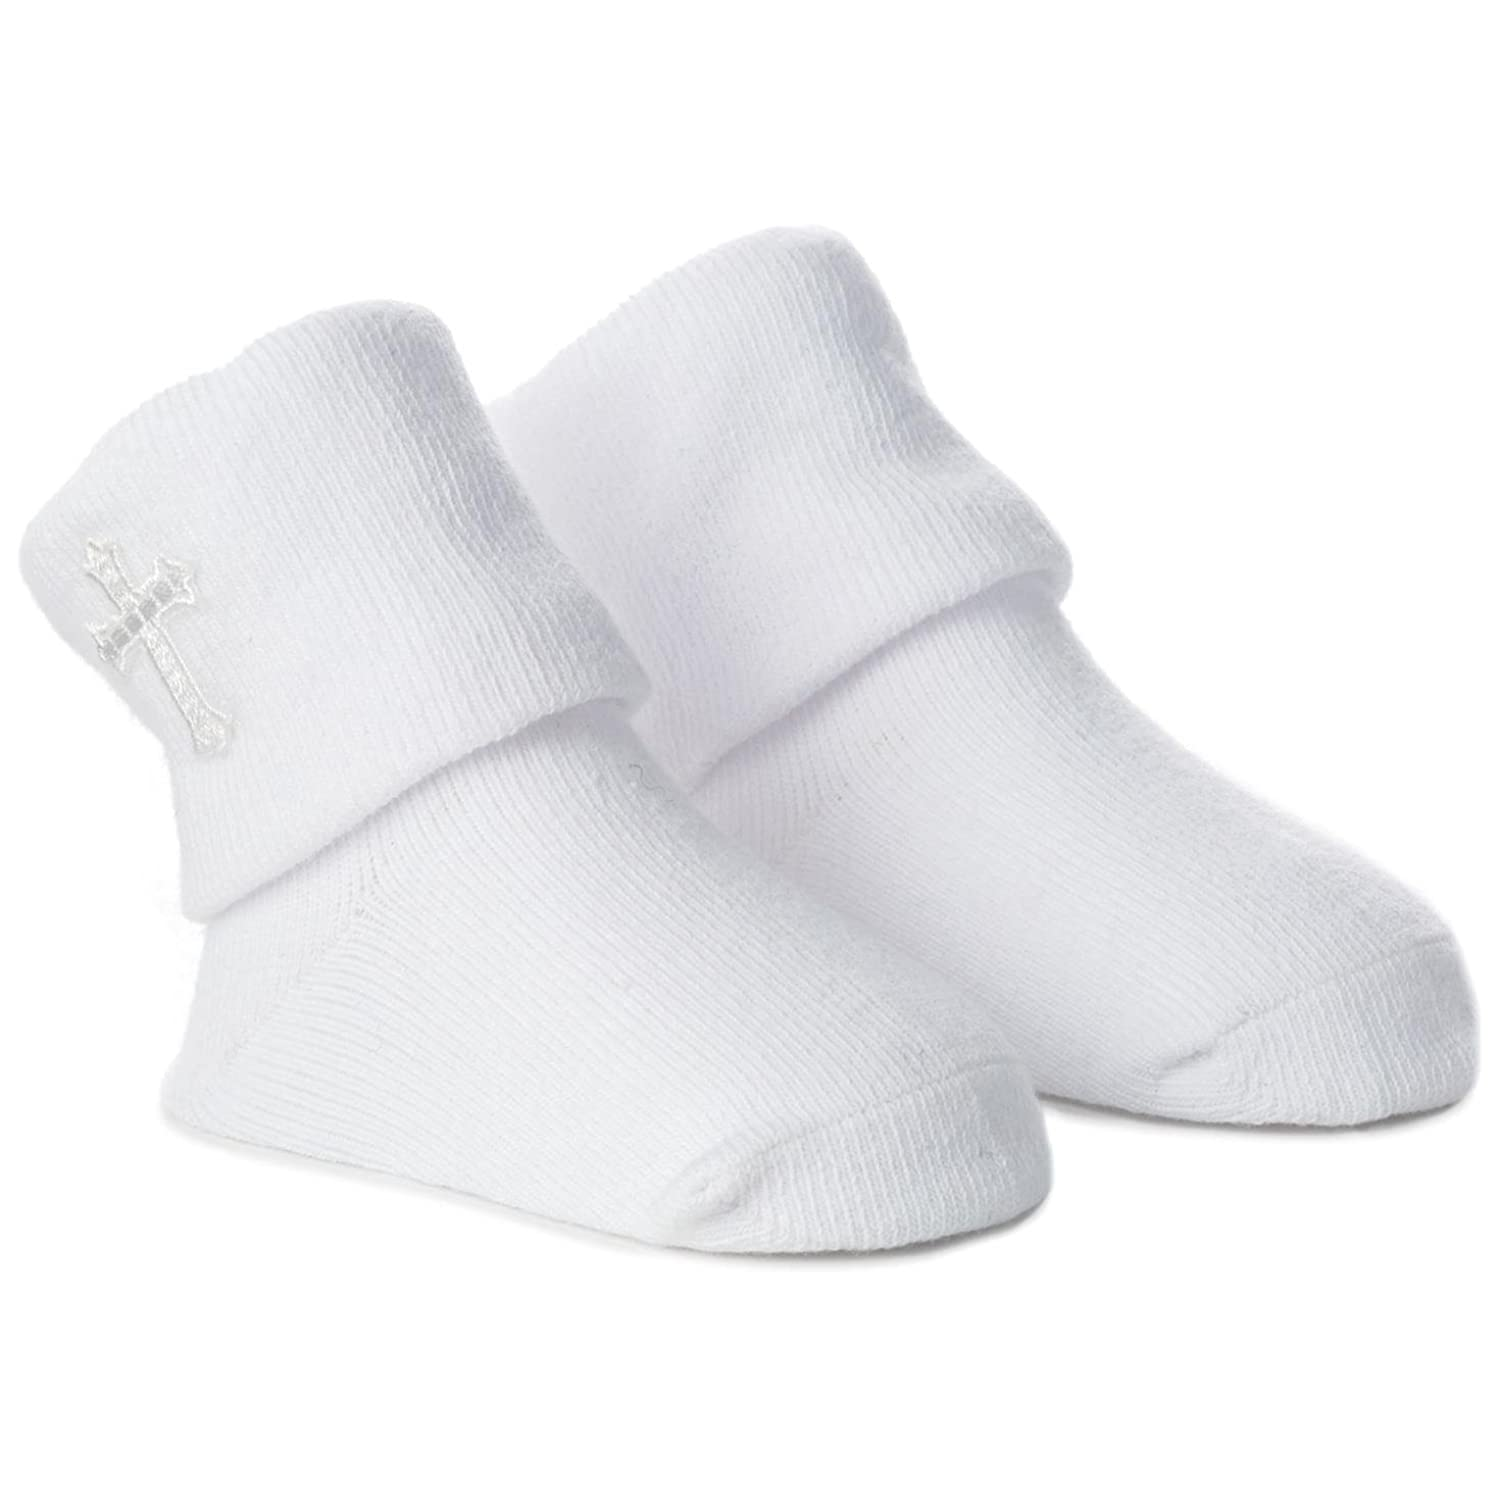 hot sell Hallmark Embroidered Cross Baby Socks, 0-12 Months hot sale